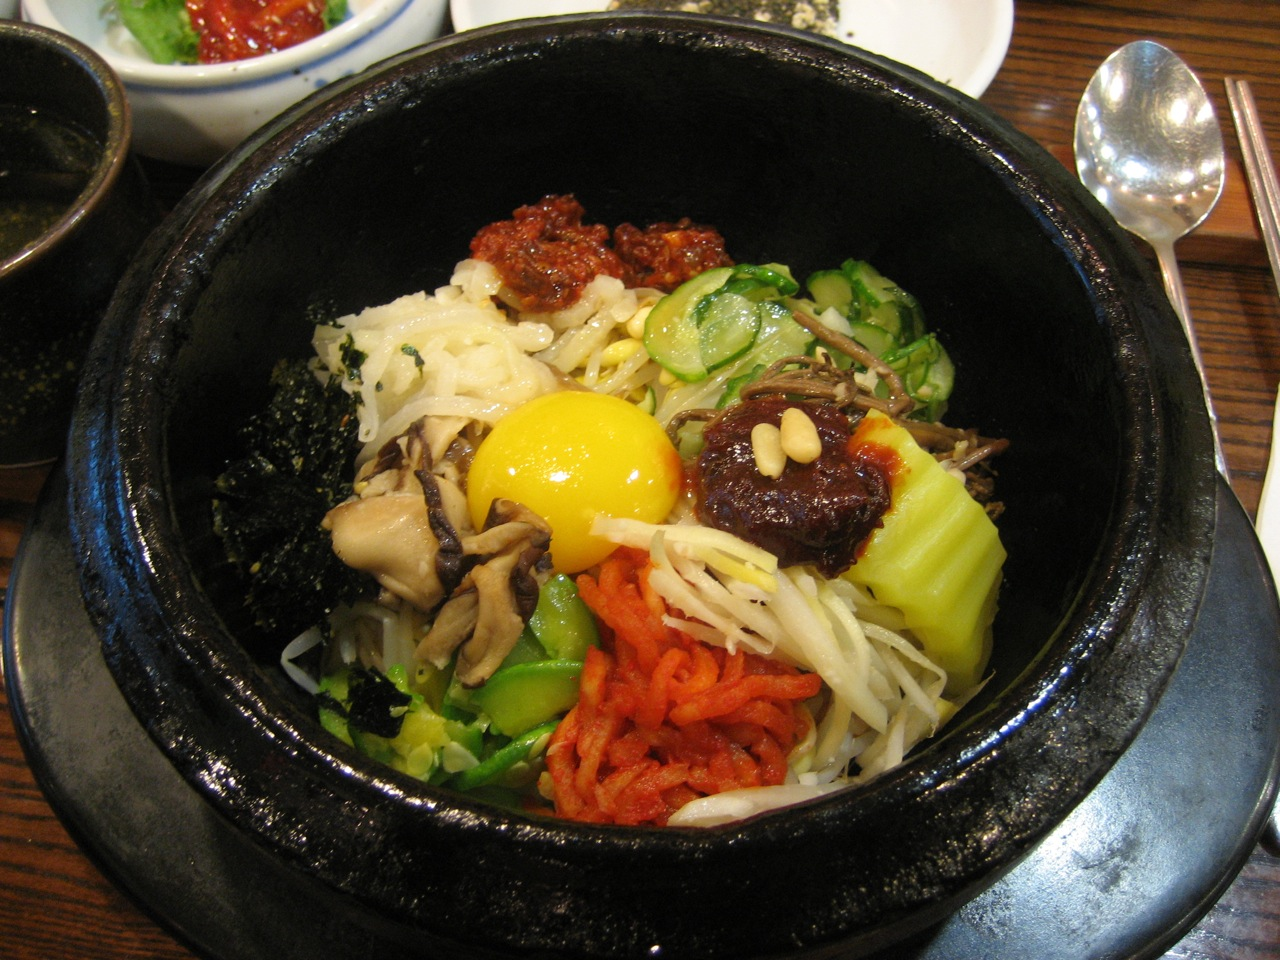 ... .wikimedia.org/wikipedia/commons/6/63/Korean_cuisine-Bibimbap-08.jpg